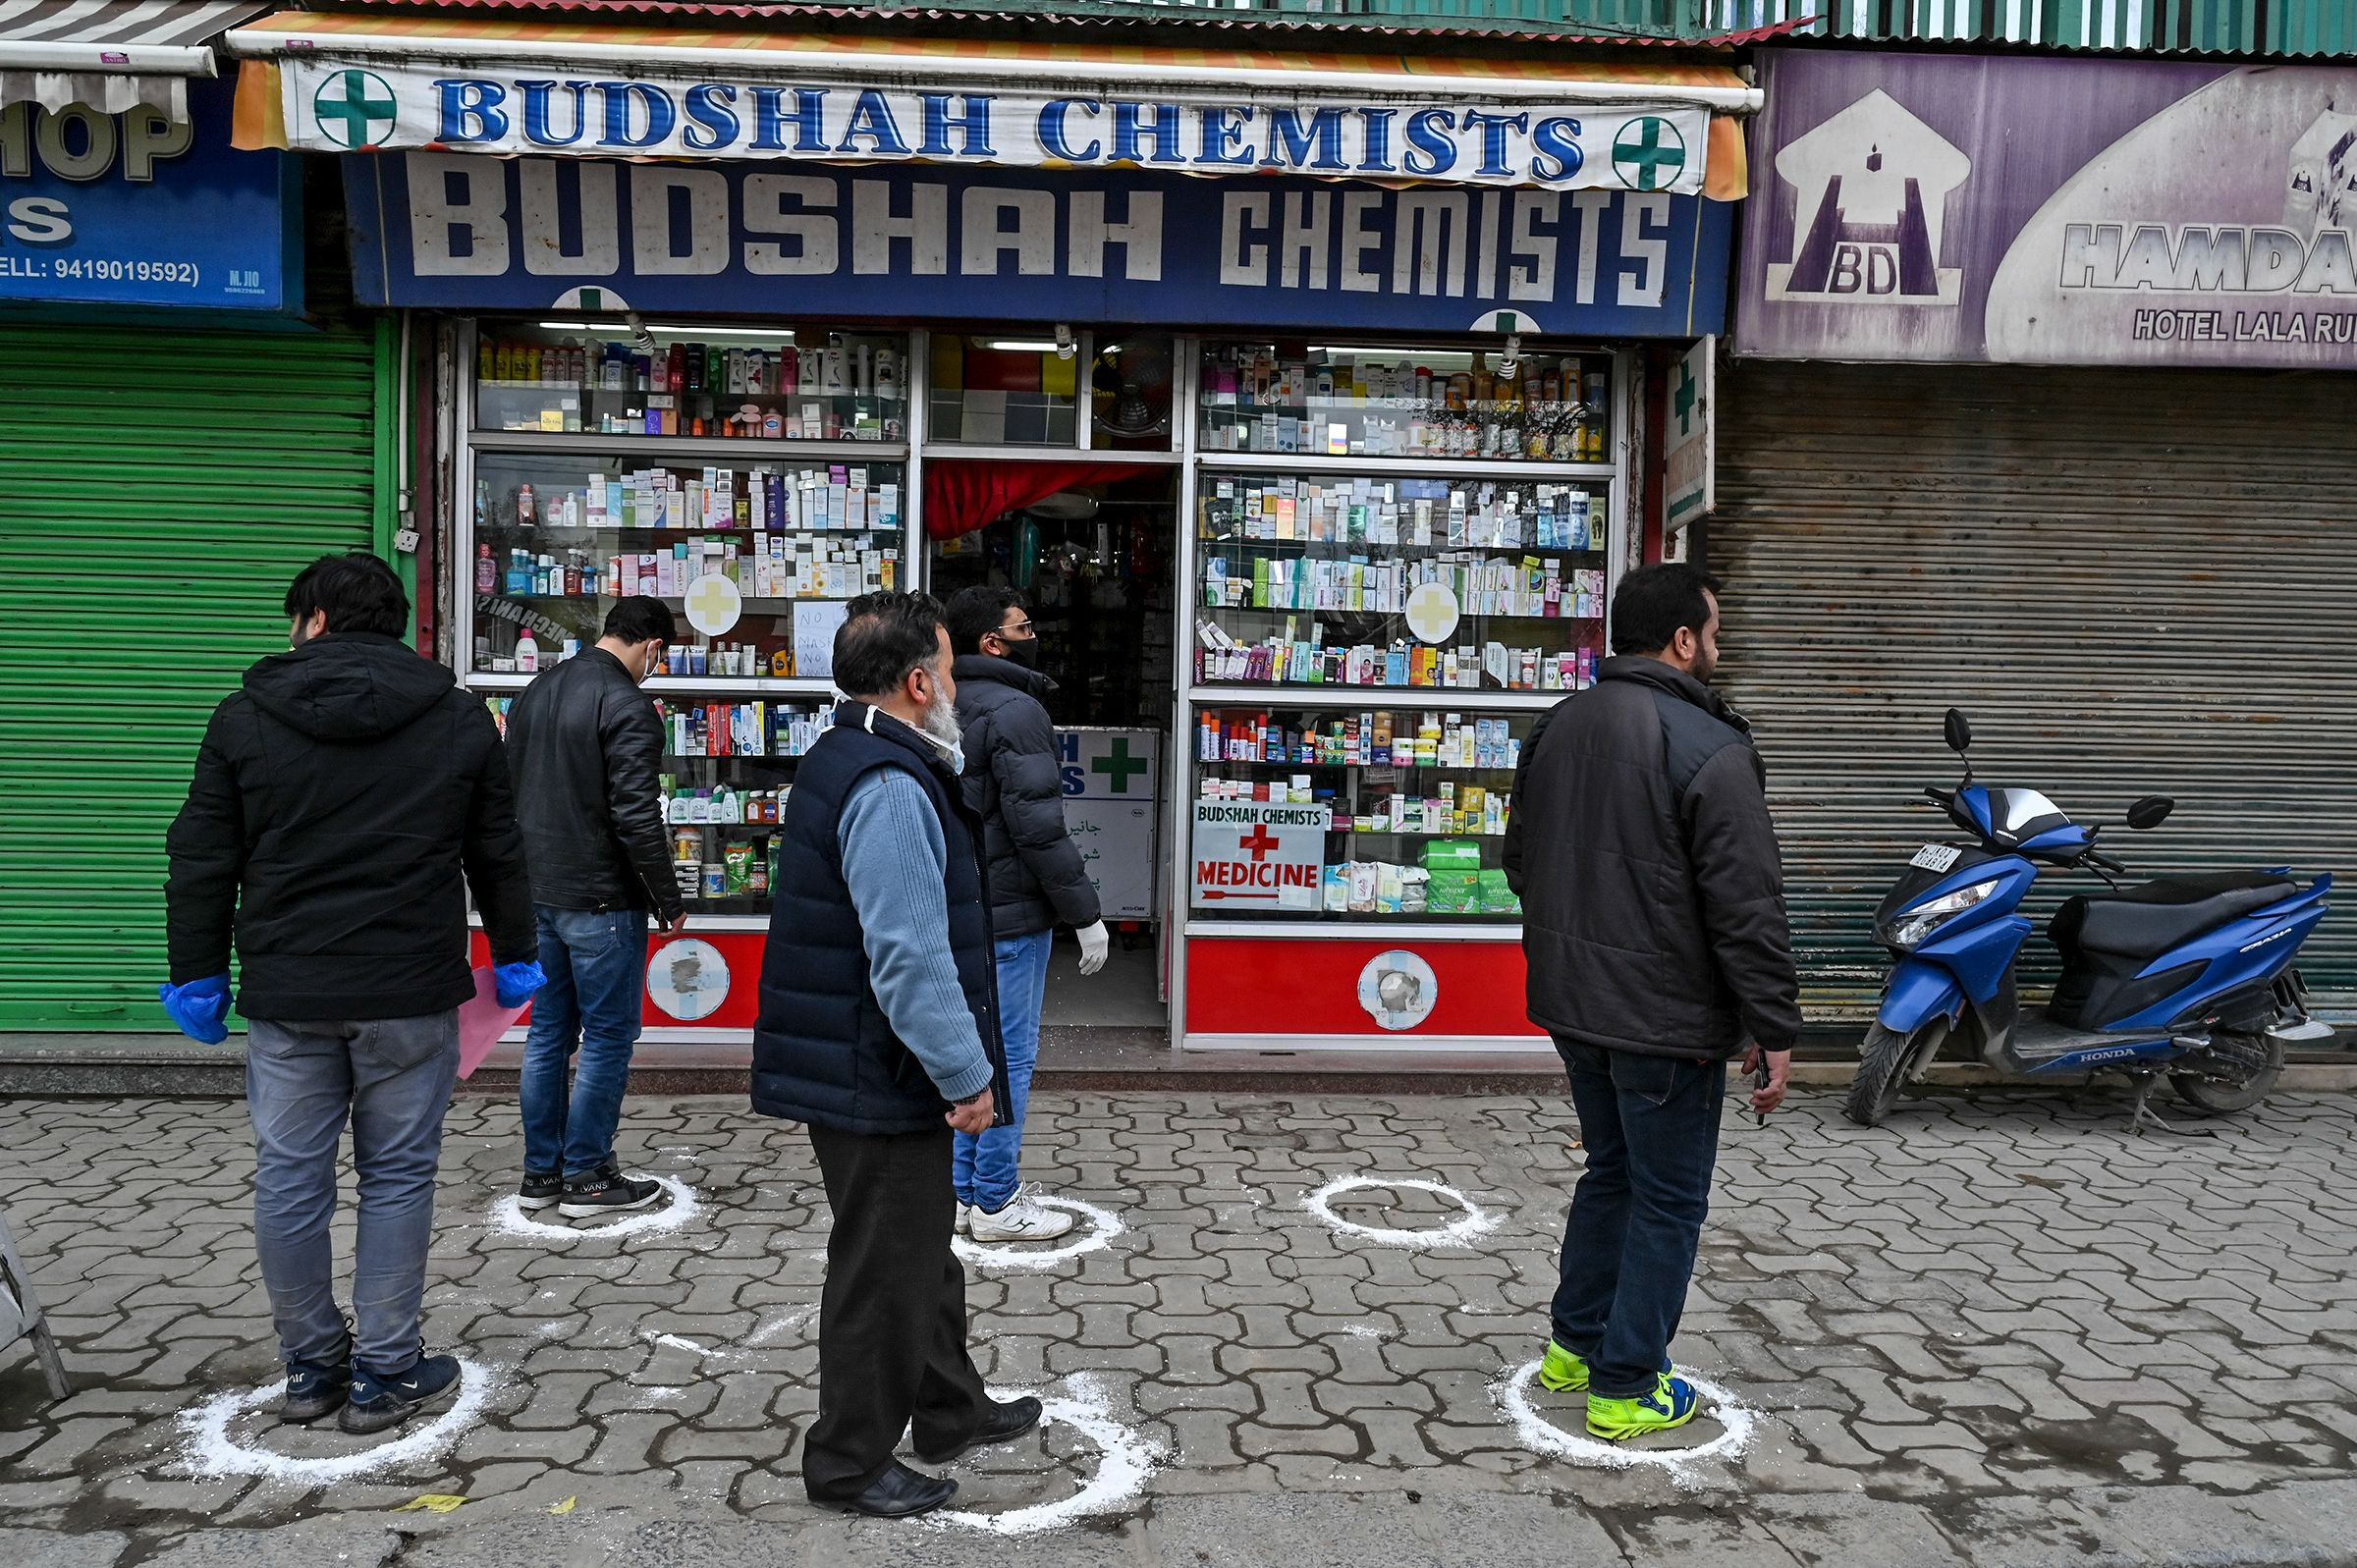 People stand on designated areas to maintain social distancing as they queue outside a medical store during a government-imposed nationwide lockdown as a preventive measure against the COVID-19 coronavirus in Srinagar on March 26, 2020. (Photo by Tauseef MUSTAFA / AFP)